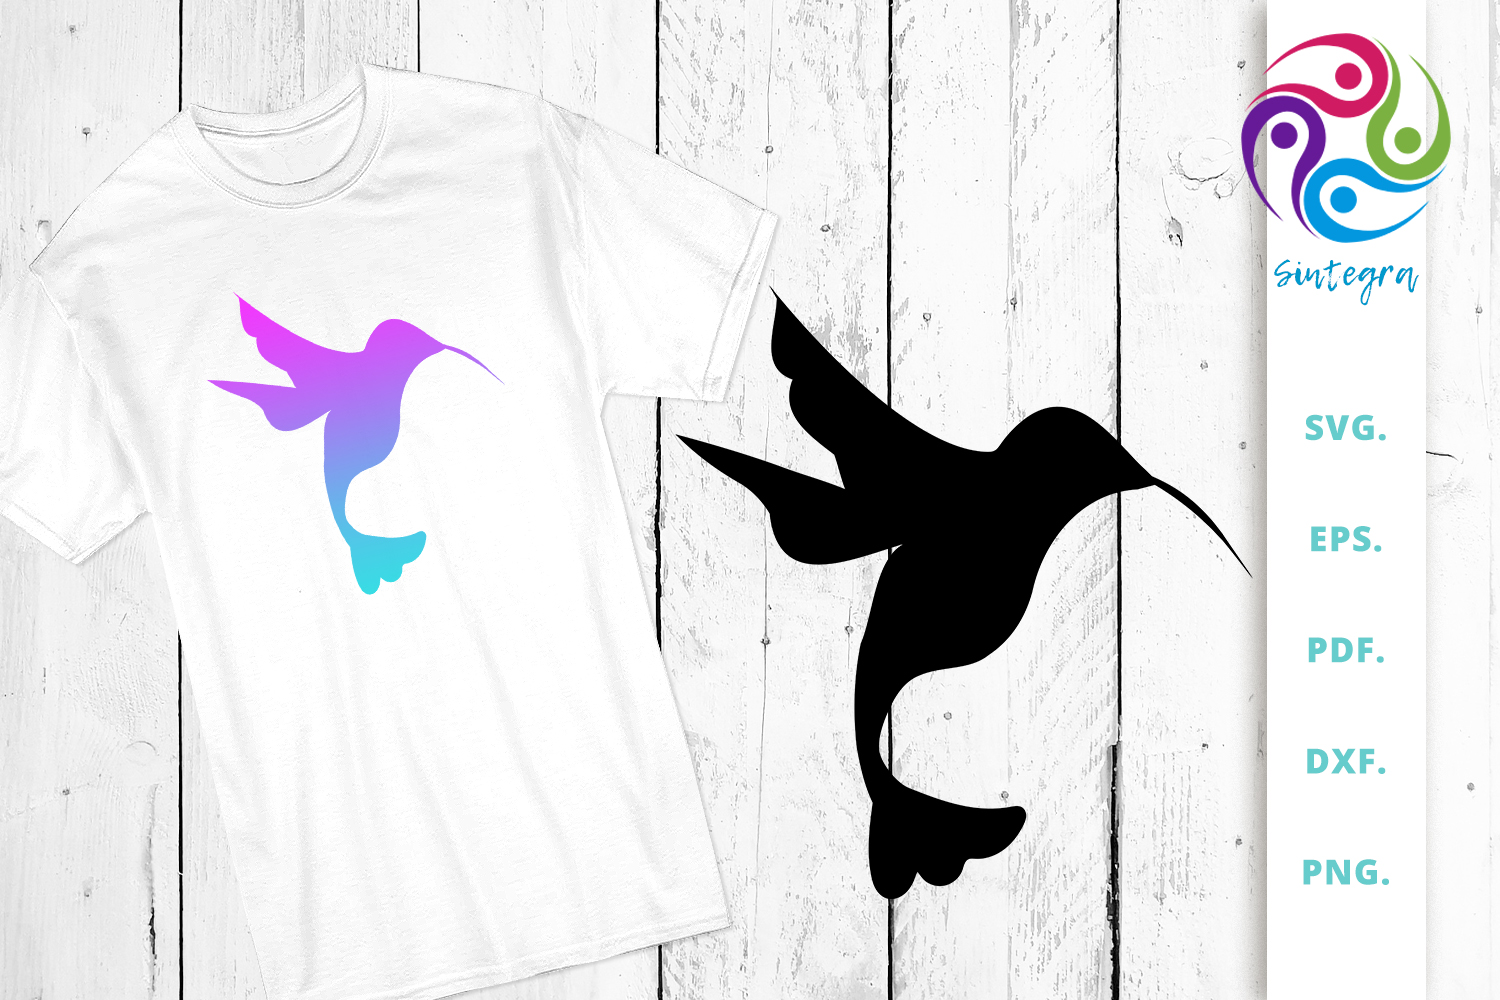 Download Free Bird Silhouette Cut File Graphic By Sintegra Creative Fabrica for Cricut Explore, Silhouette and other cutting machines.